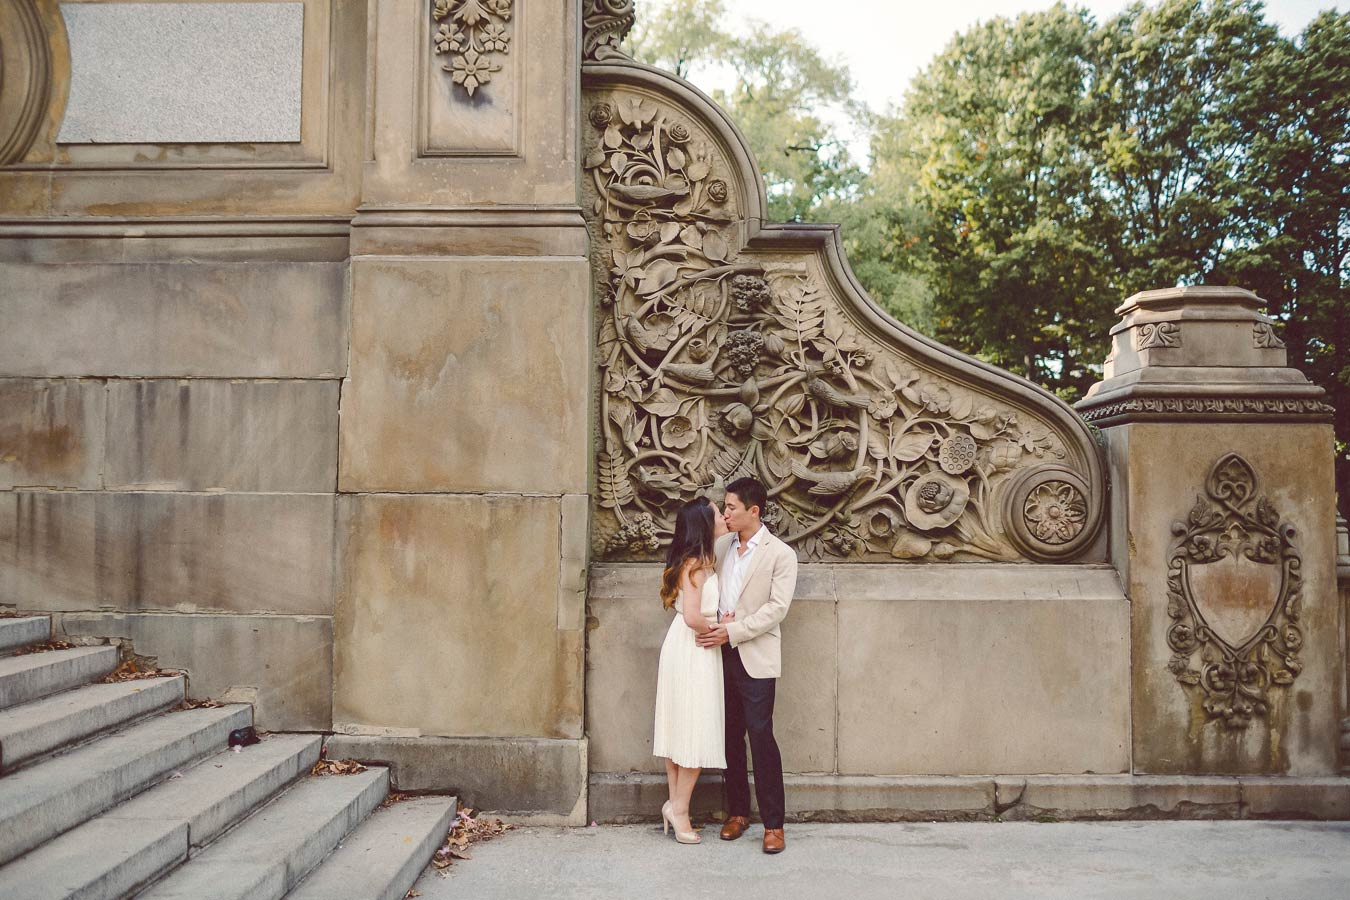 central-park-nyc-engagement-photographer-best0006.jpg